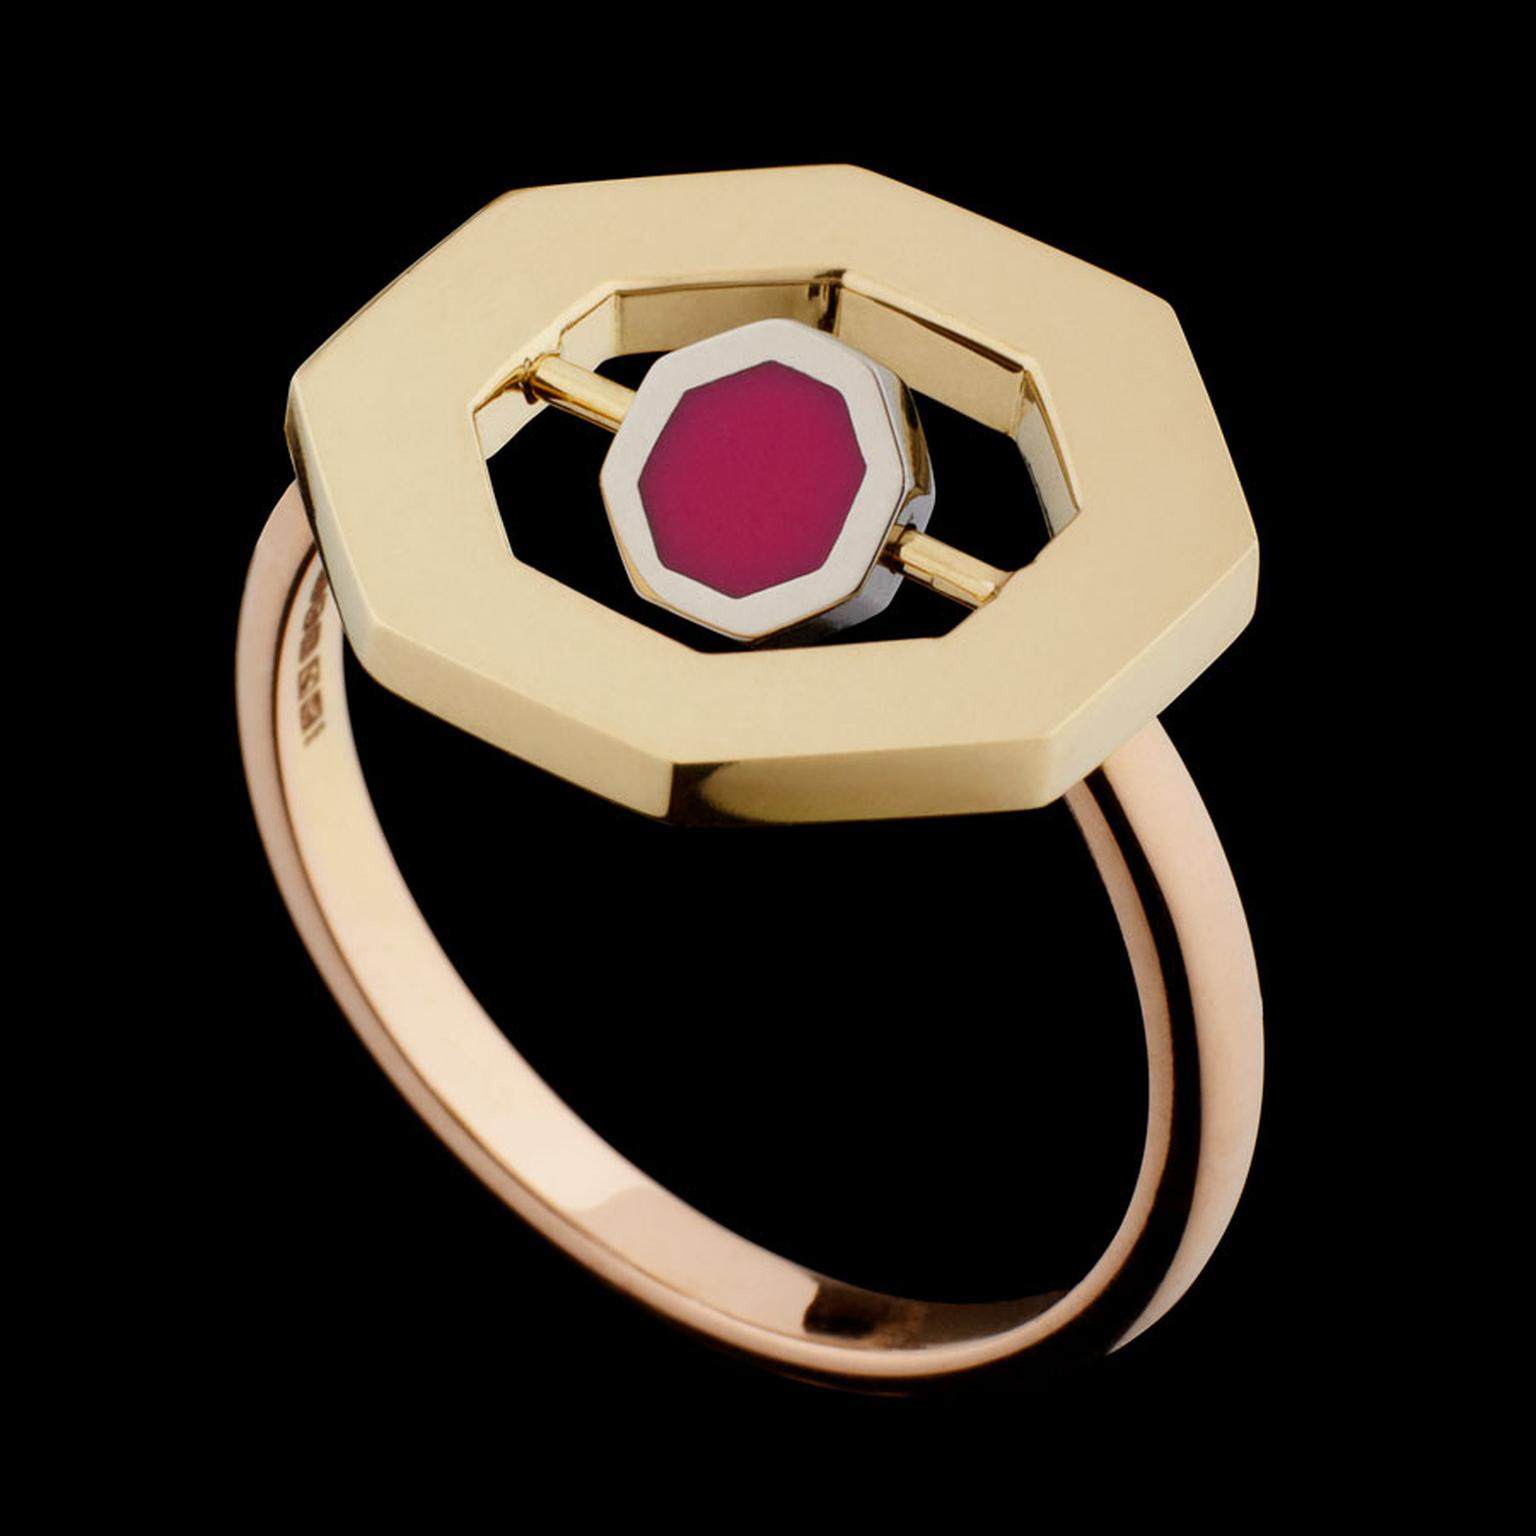 Hattie Rickards Flip Octo Ring with a revolving central octagon in enamel set in Fairtrade Fairmined ecological gold.